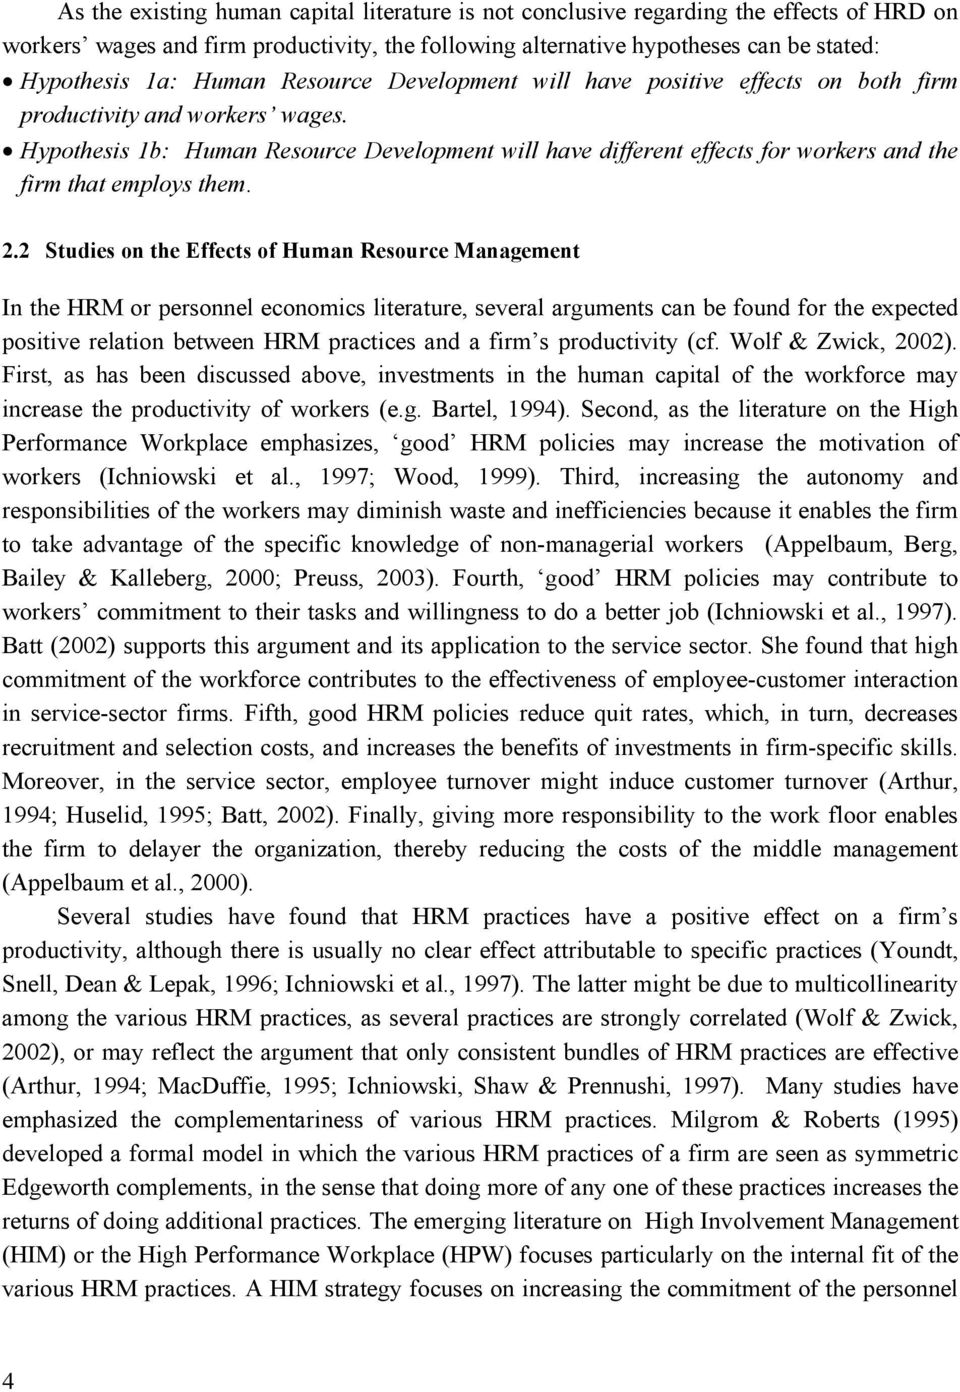 2 Studes on the Effects of Human Resource Management In the HRM or personnel economcs lterature, several arguments can be found for the expected postve relaton between HRM practces and a frm s